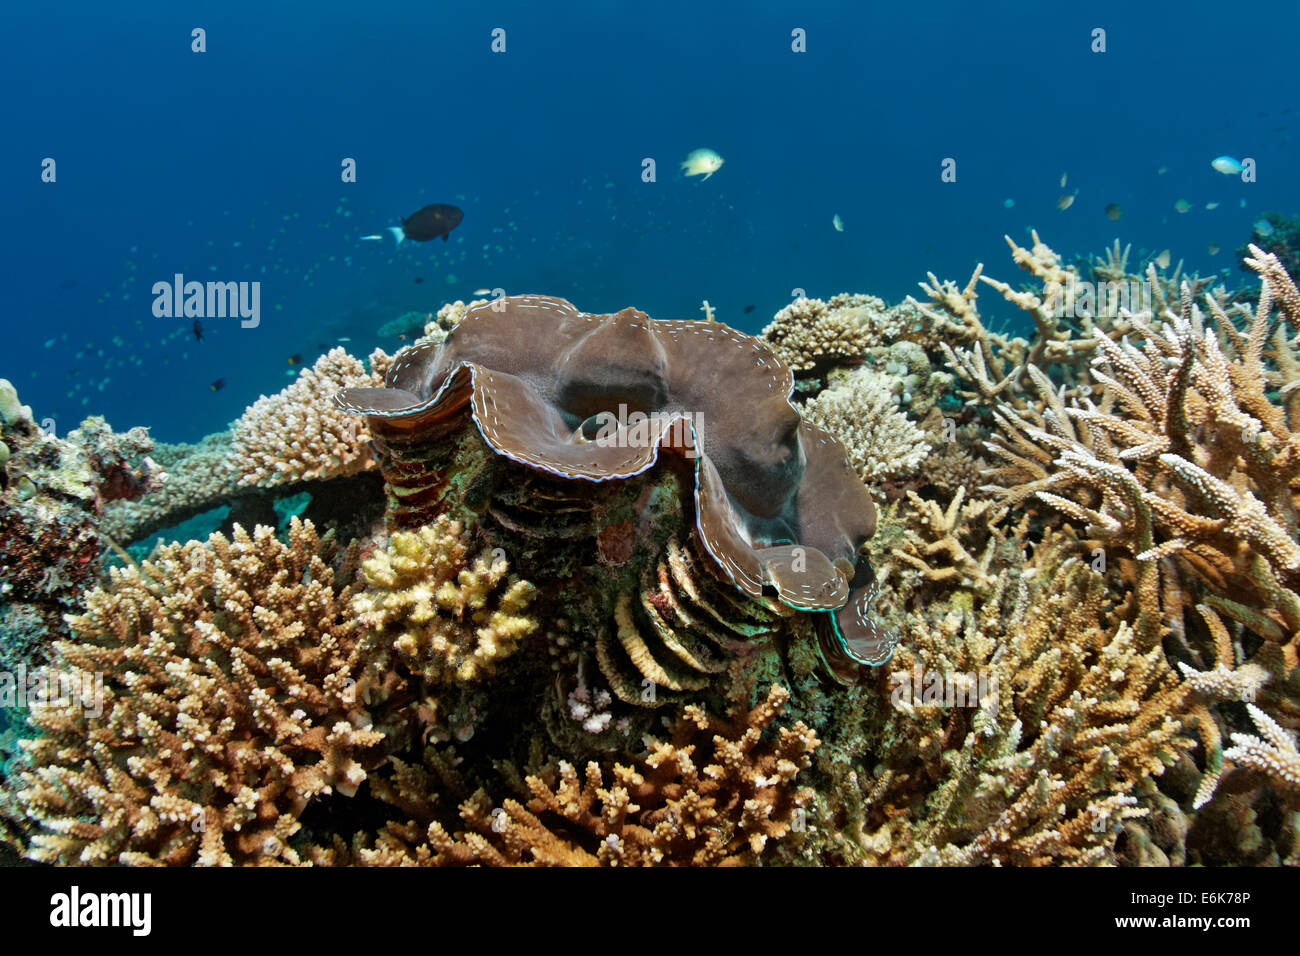 Giant Clam (Tridacna gigas), growning in coral reef with various Acropora Corals (Acropora sp.), Indian Ocean, Embudu - Stock Image